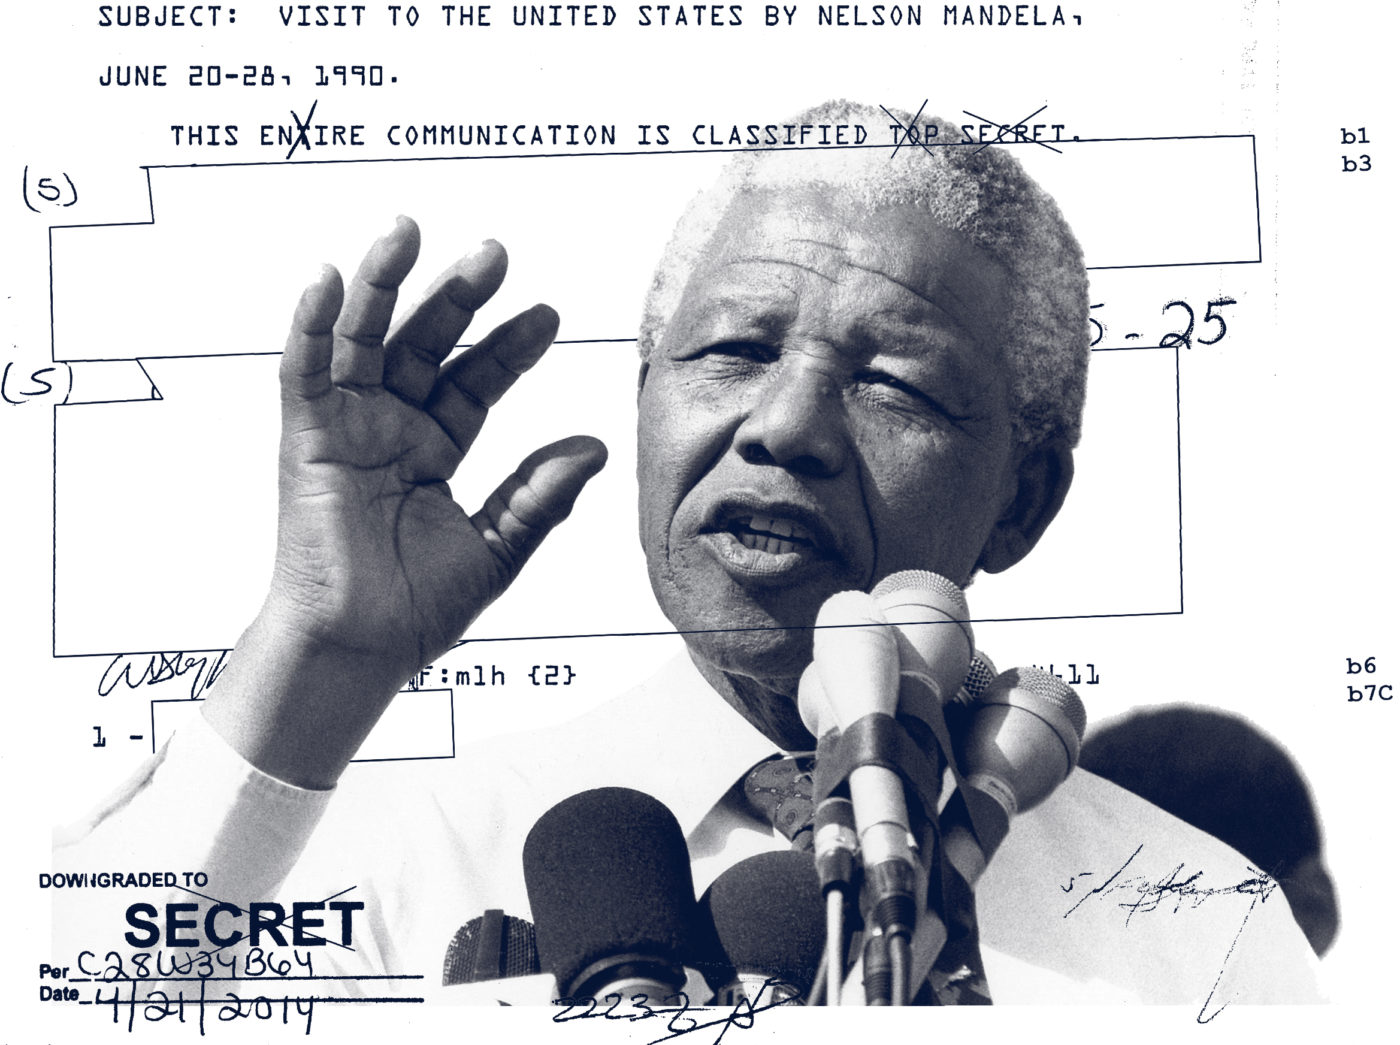 Property of the People Makes Public Thousands of Pages of U.S. Intelligence Agency Documents about Nelson Mandela